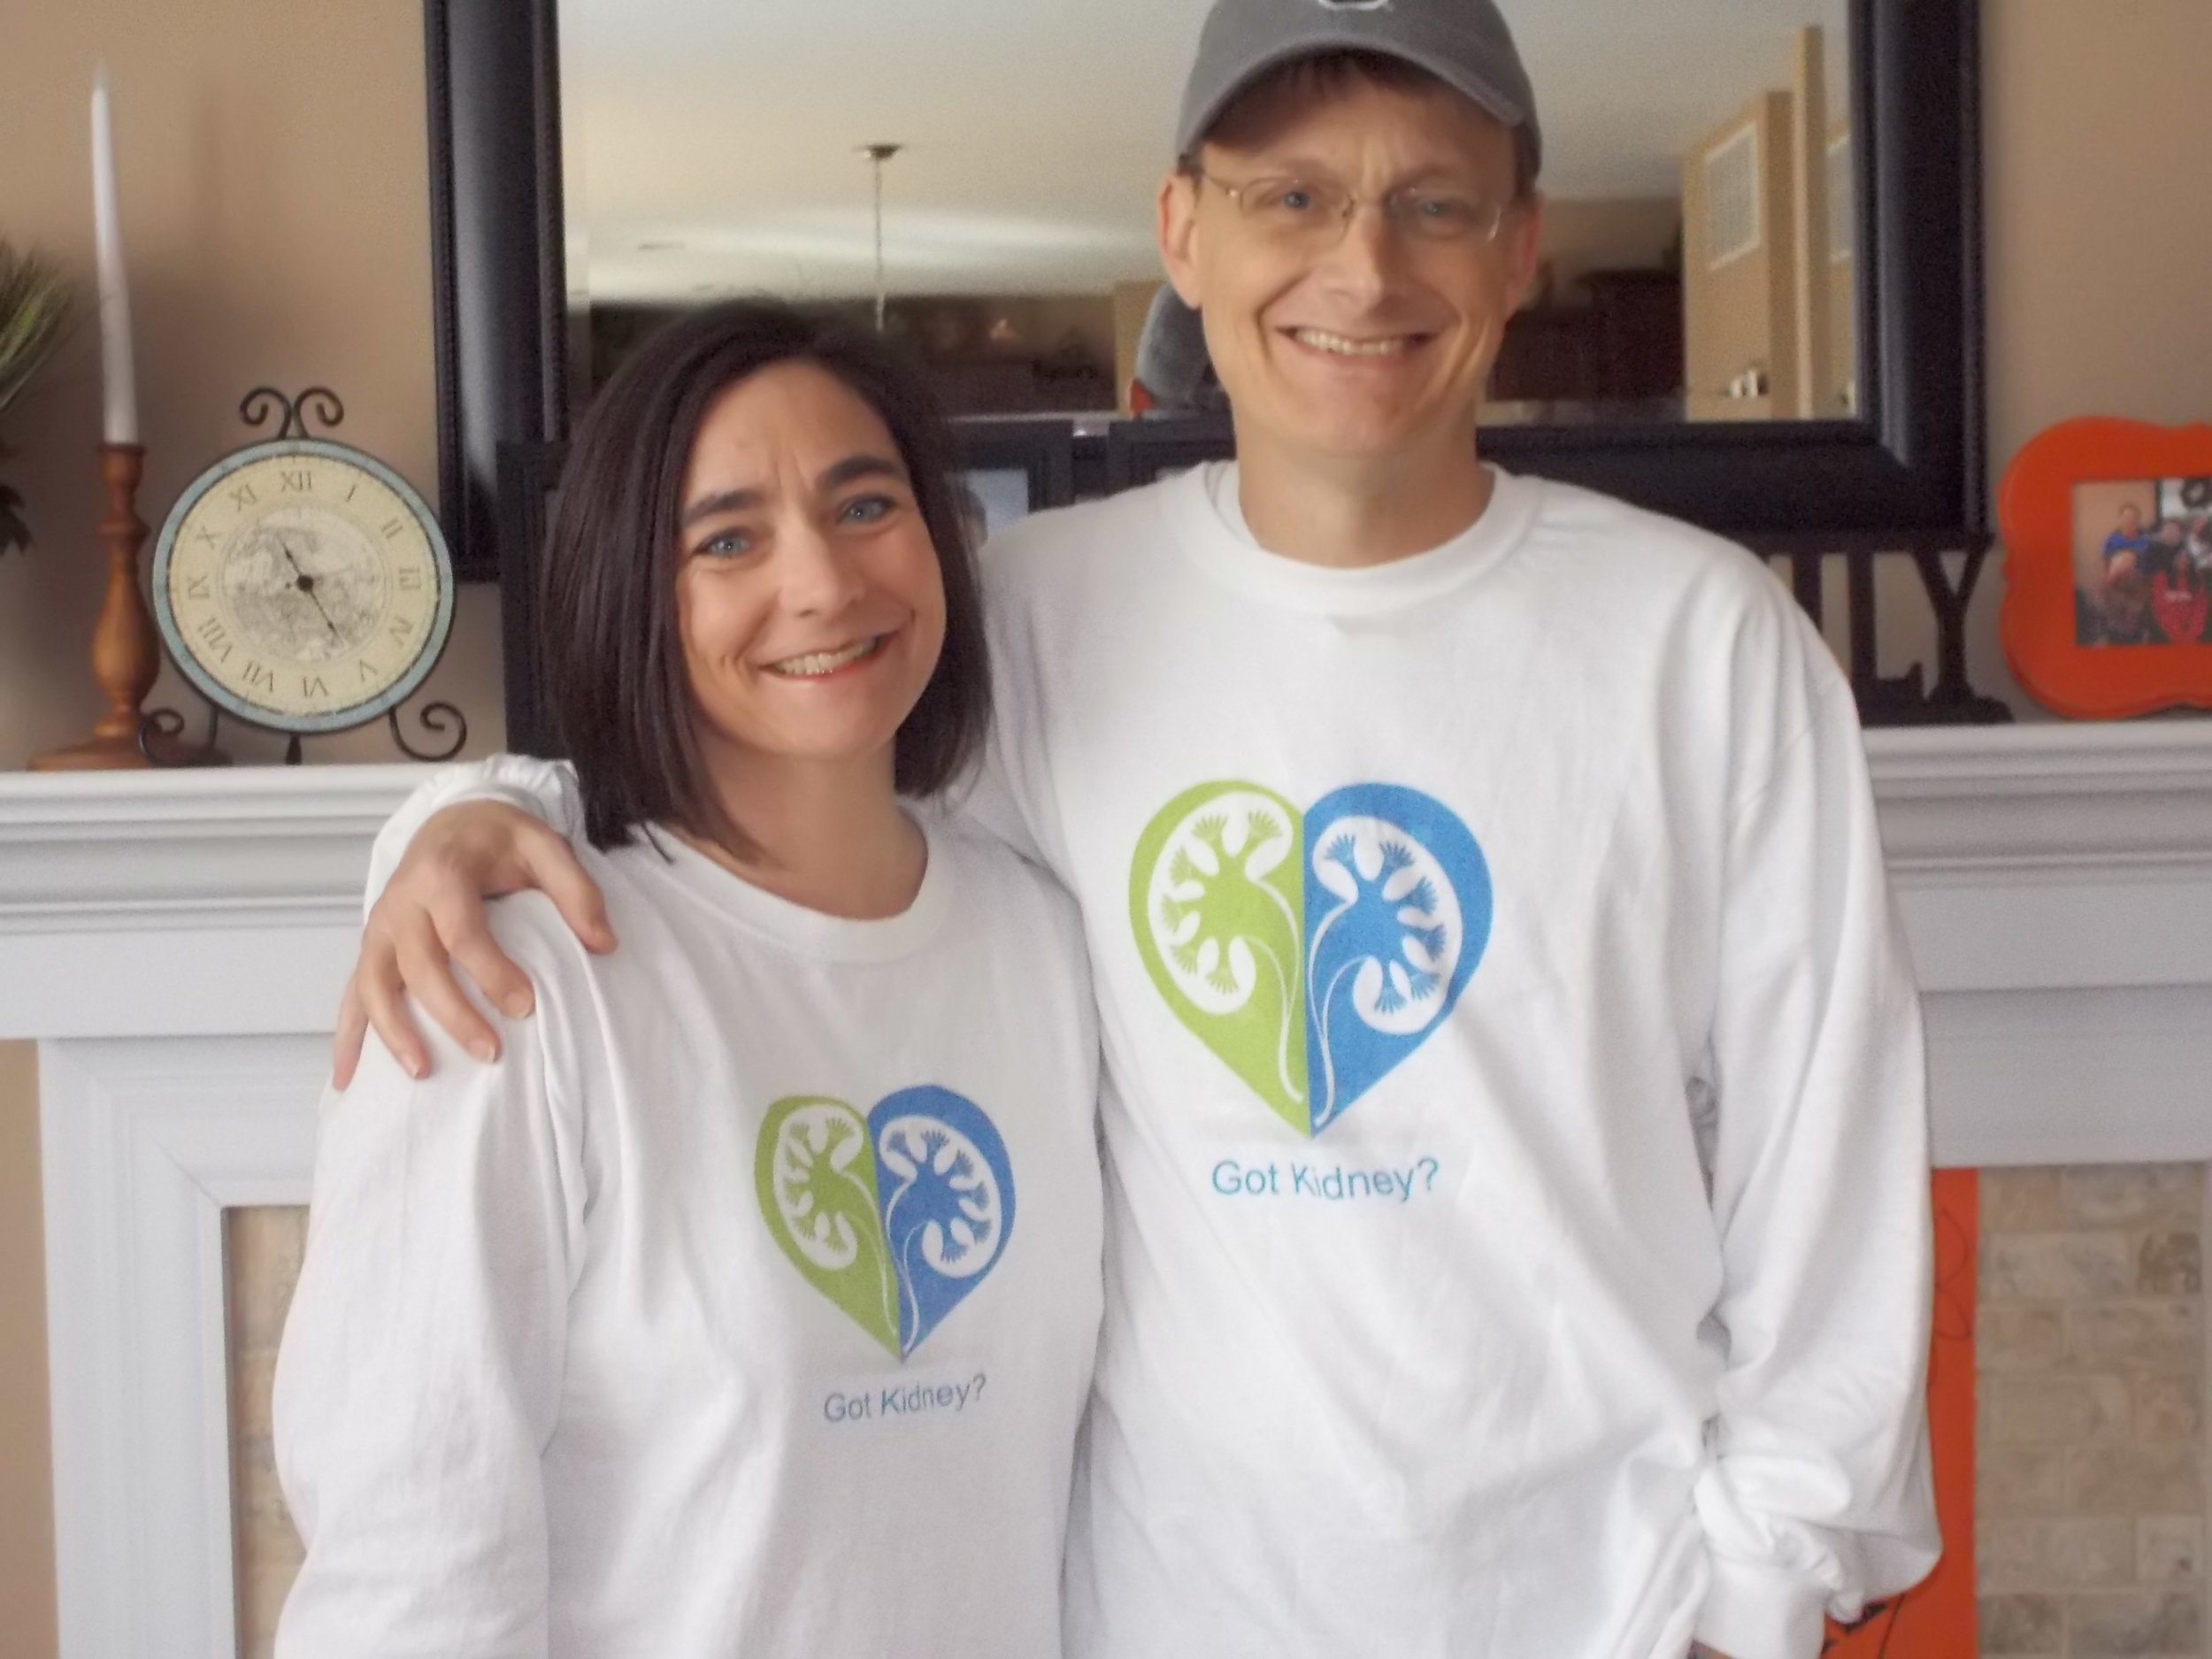 Shari and Jeff, recovered and feeling great after their kidney donation and kidney transplant surgeries.